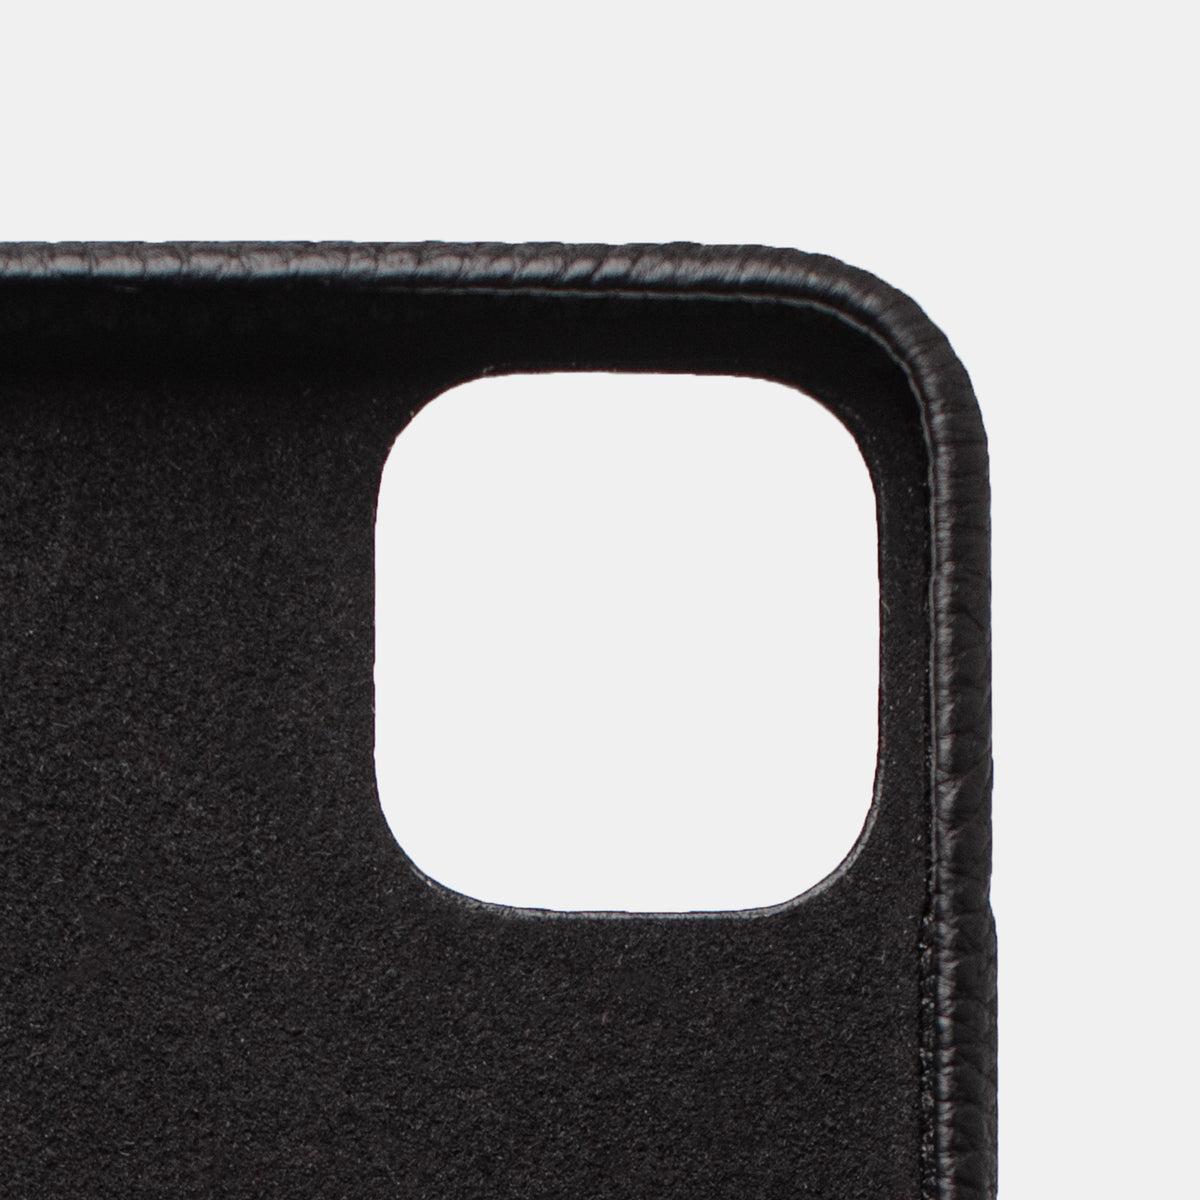 iPhone Leather Shell Case